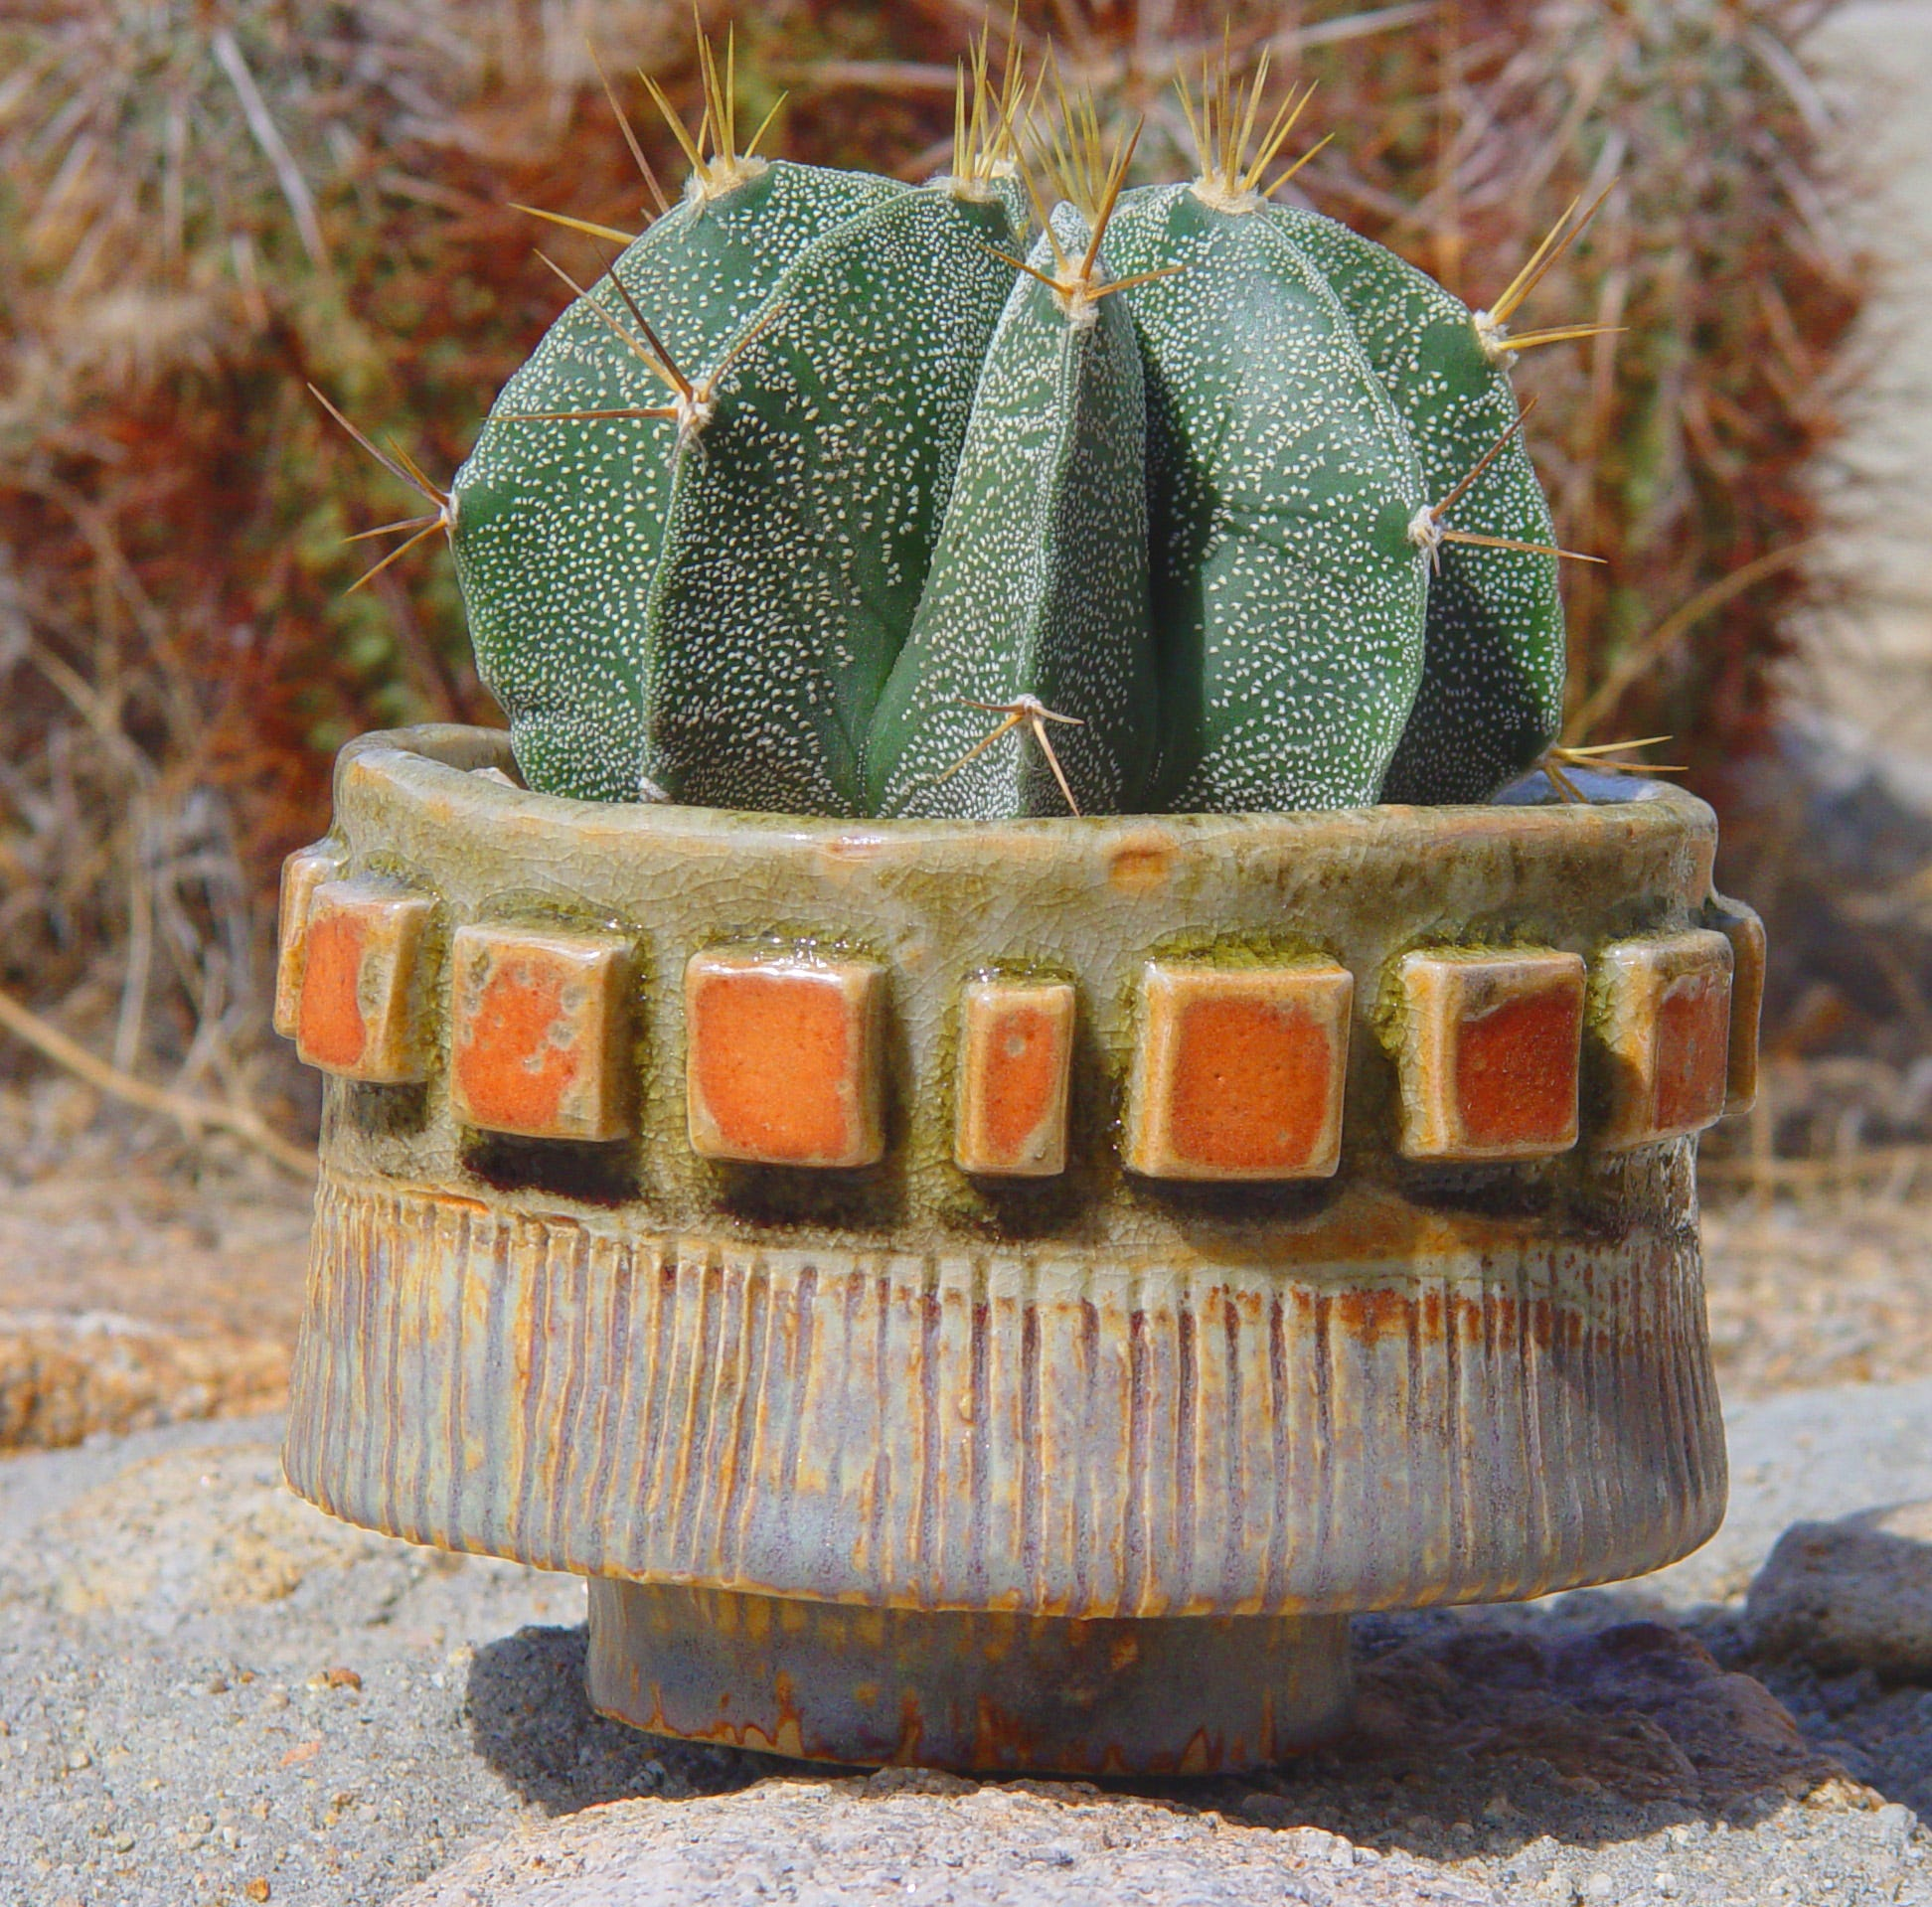 To turn a succulent into a living sculpture, add it to a one-of-a-kind pot